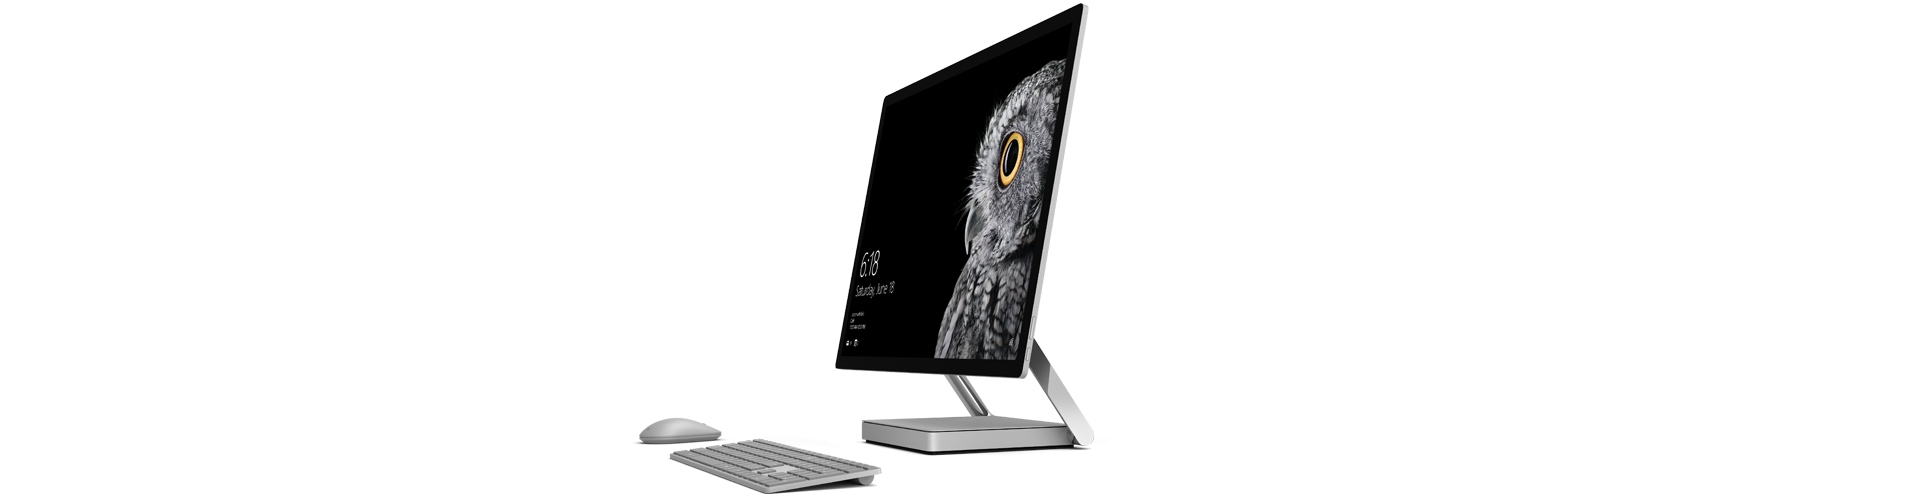 Surface Studio in upright position with Surface mouse and keyboard.